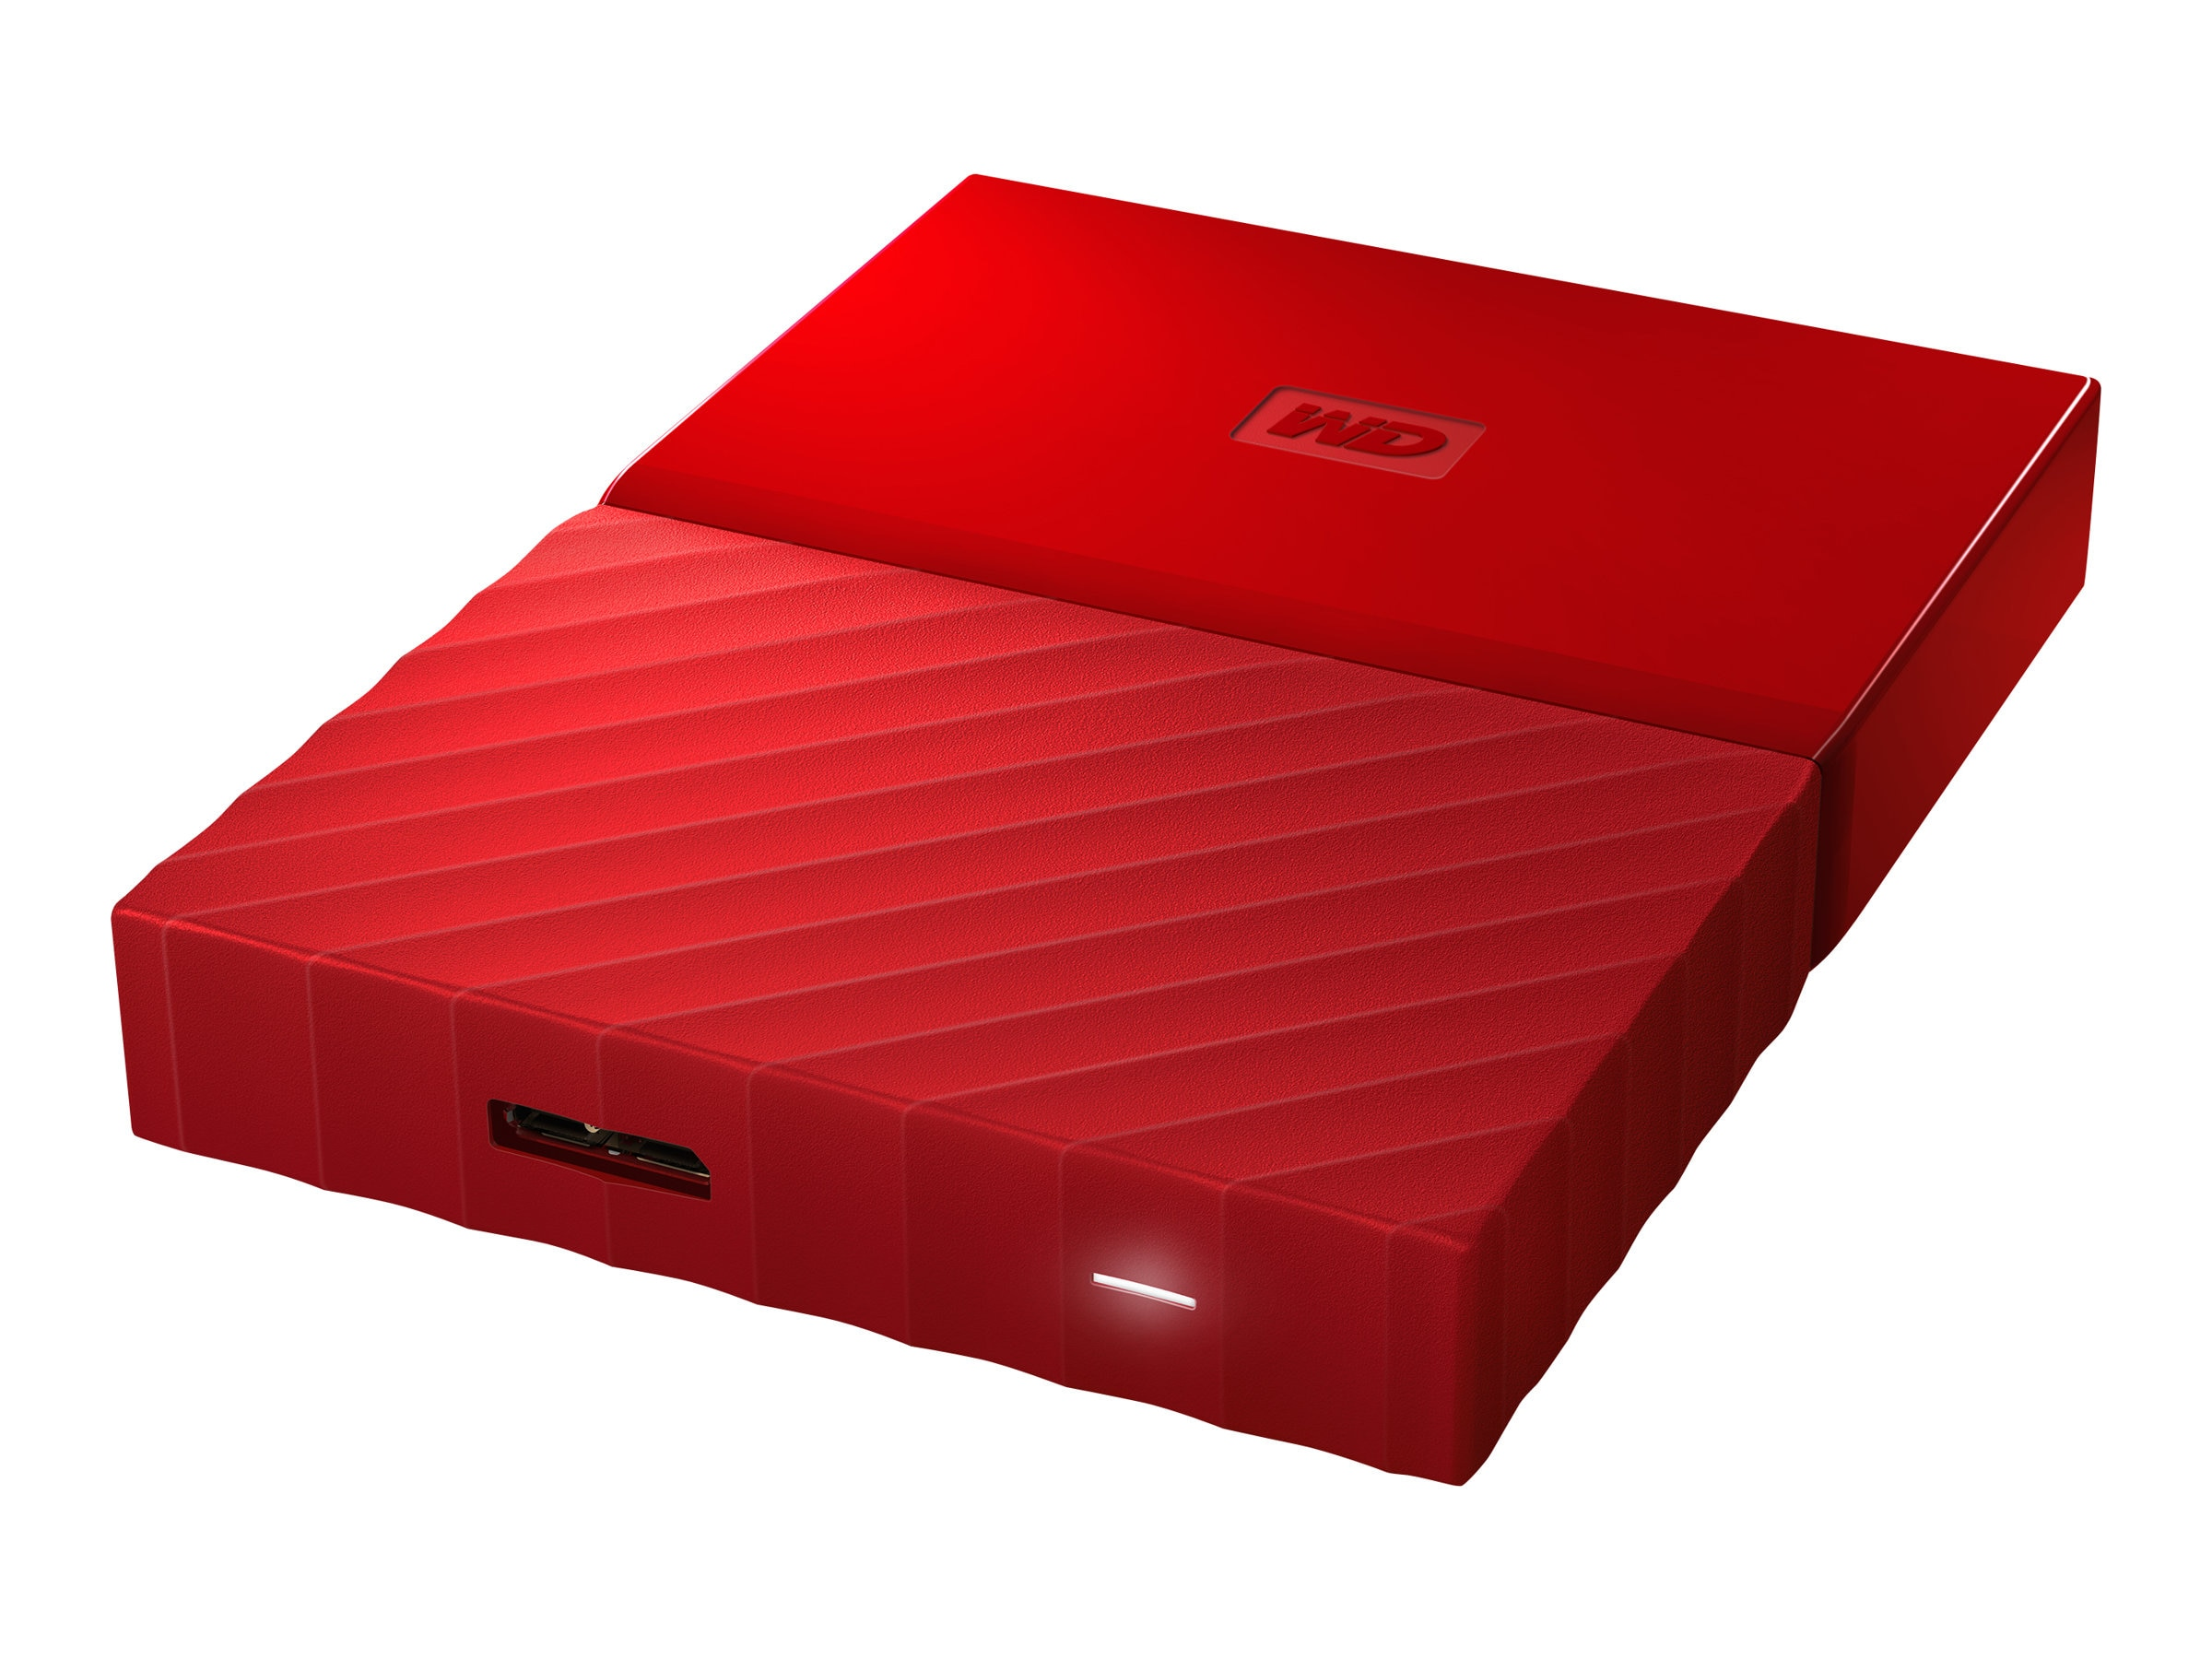 WD 4TB My Passport USB 3.0 Portable Hard Drive - Red